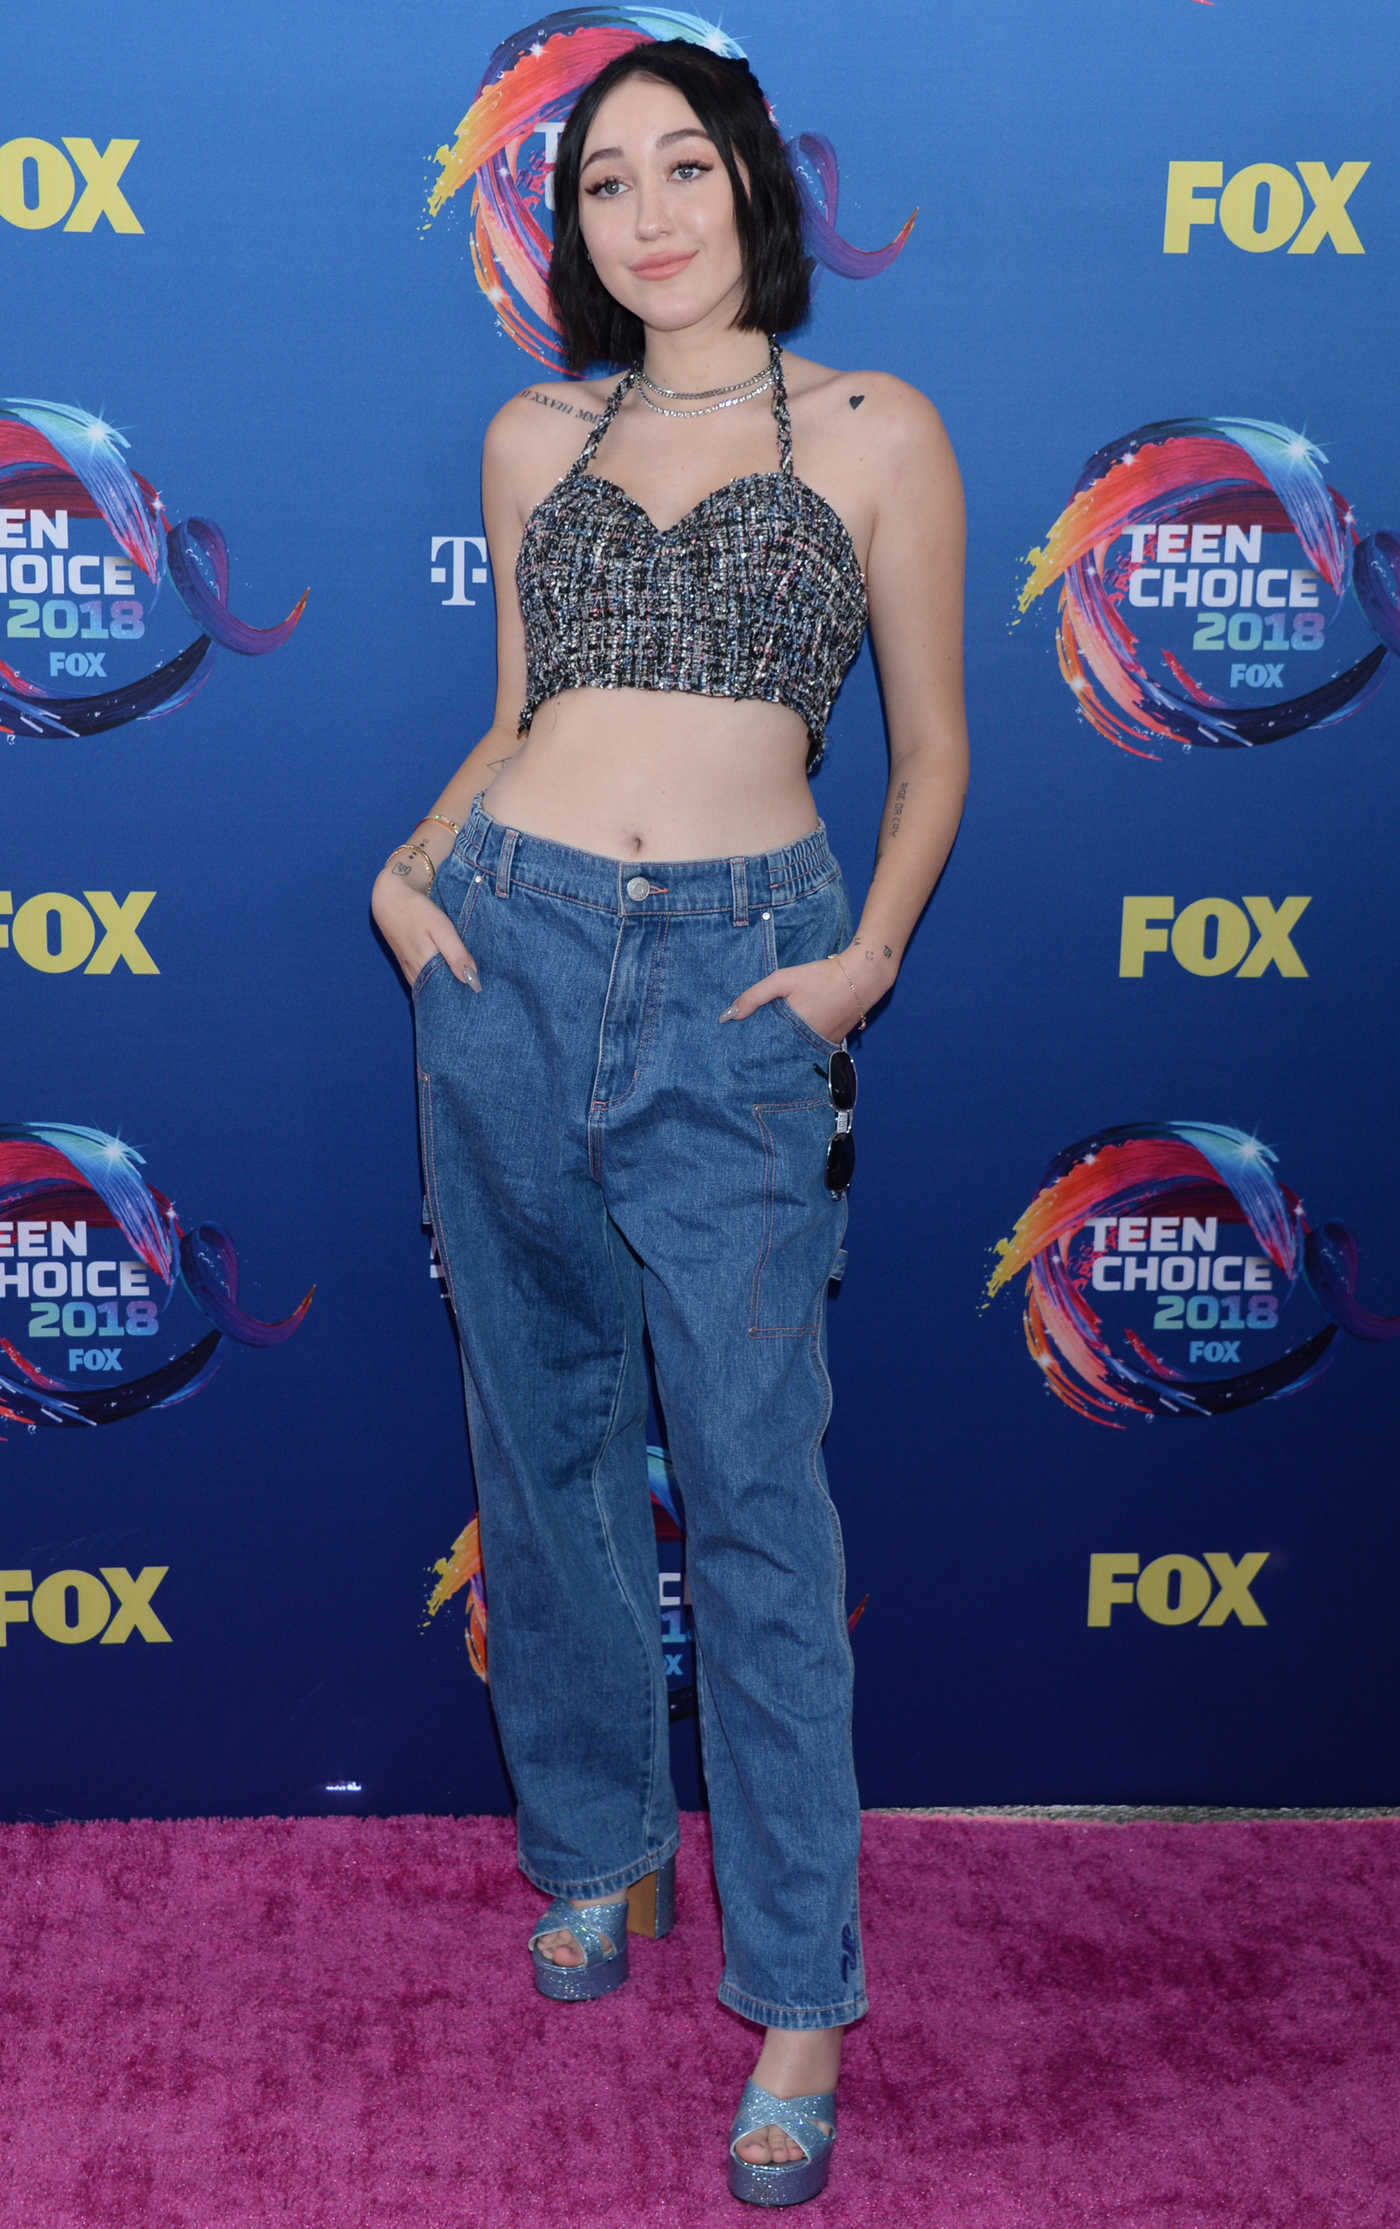 Noah Cyrus at 2018 Teen Choice Awards in Inglewood 08/12/2018